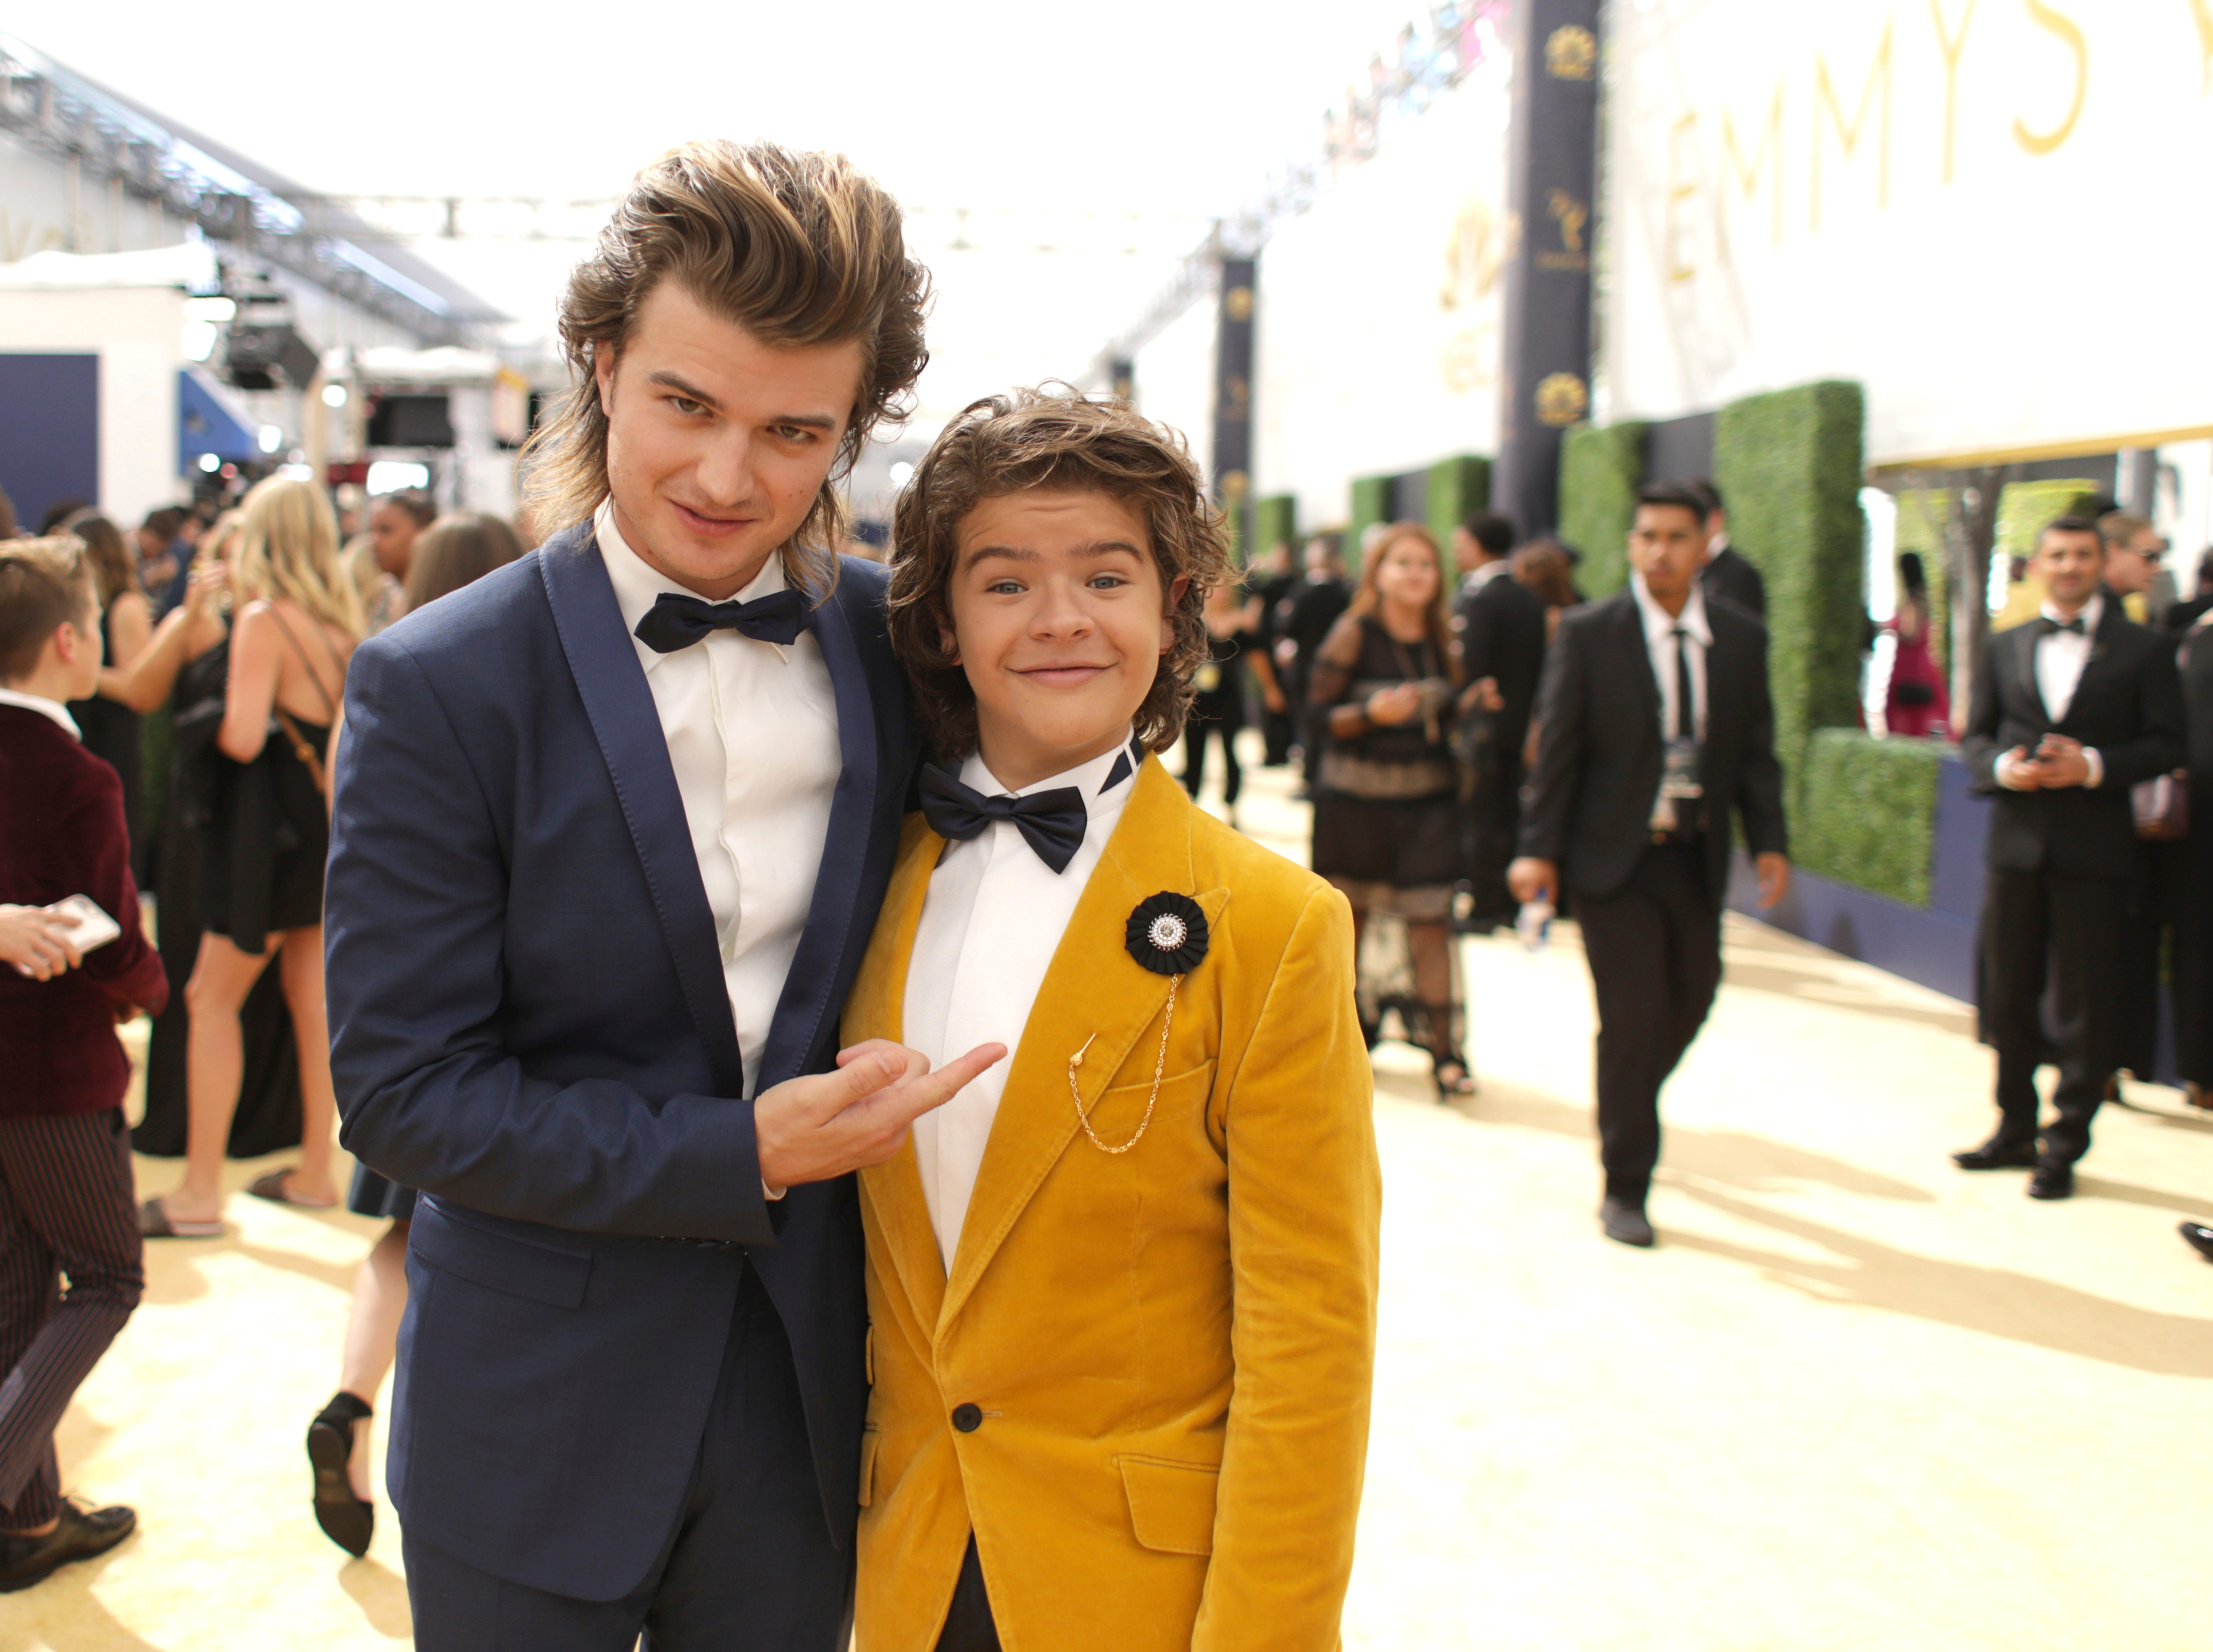 Joe Keery, left, and Gaten Matarazzo at the 70th Primetime Emmy Awards on Monday, Sept. 17, 2018, at the Microsoft Theater in Los Angeles.